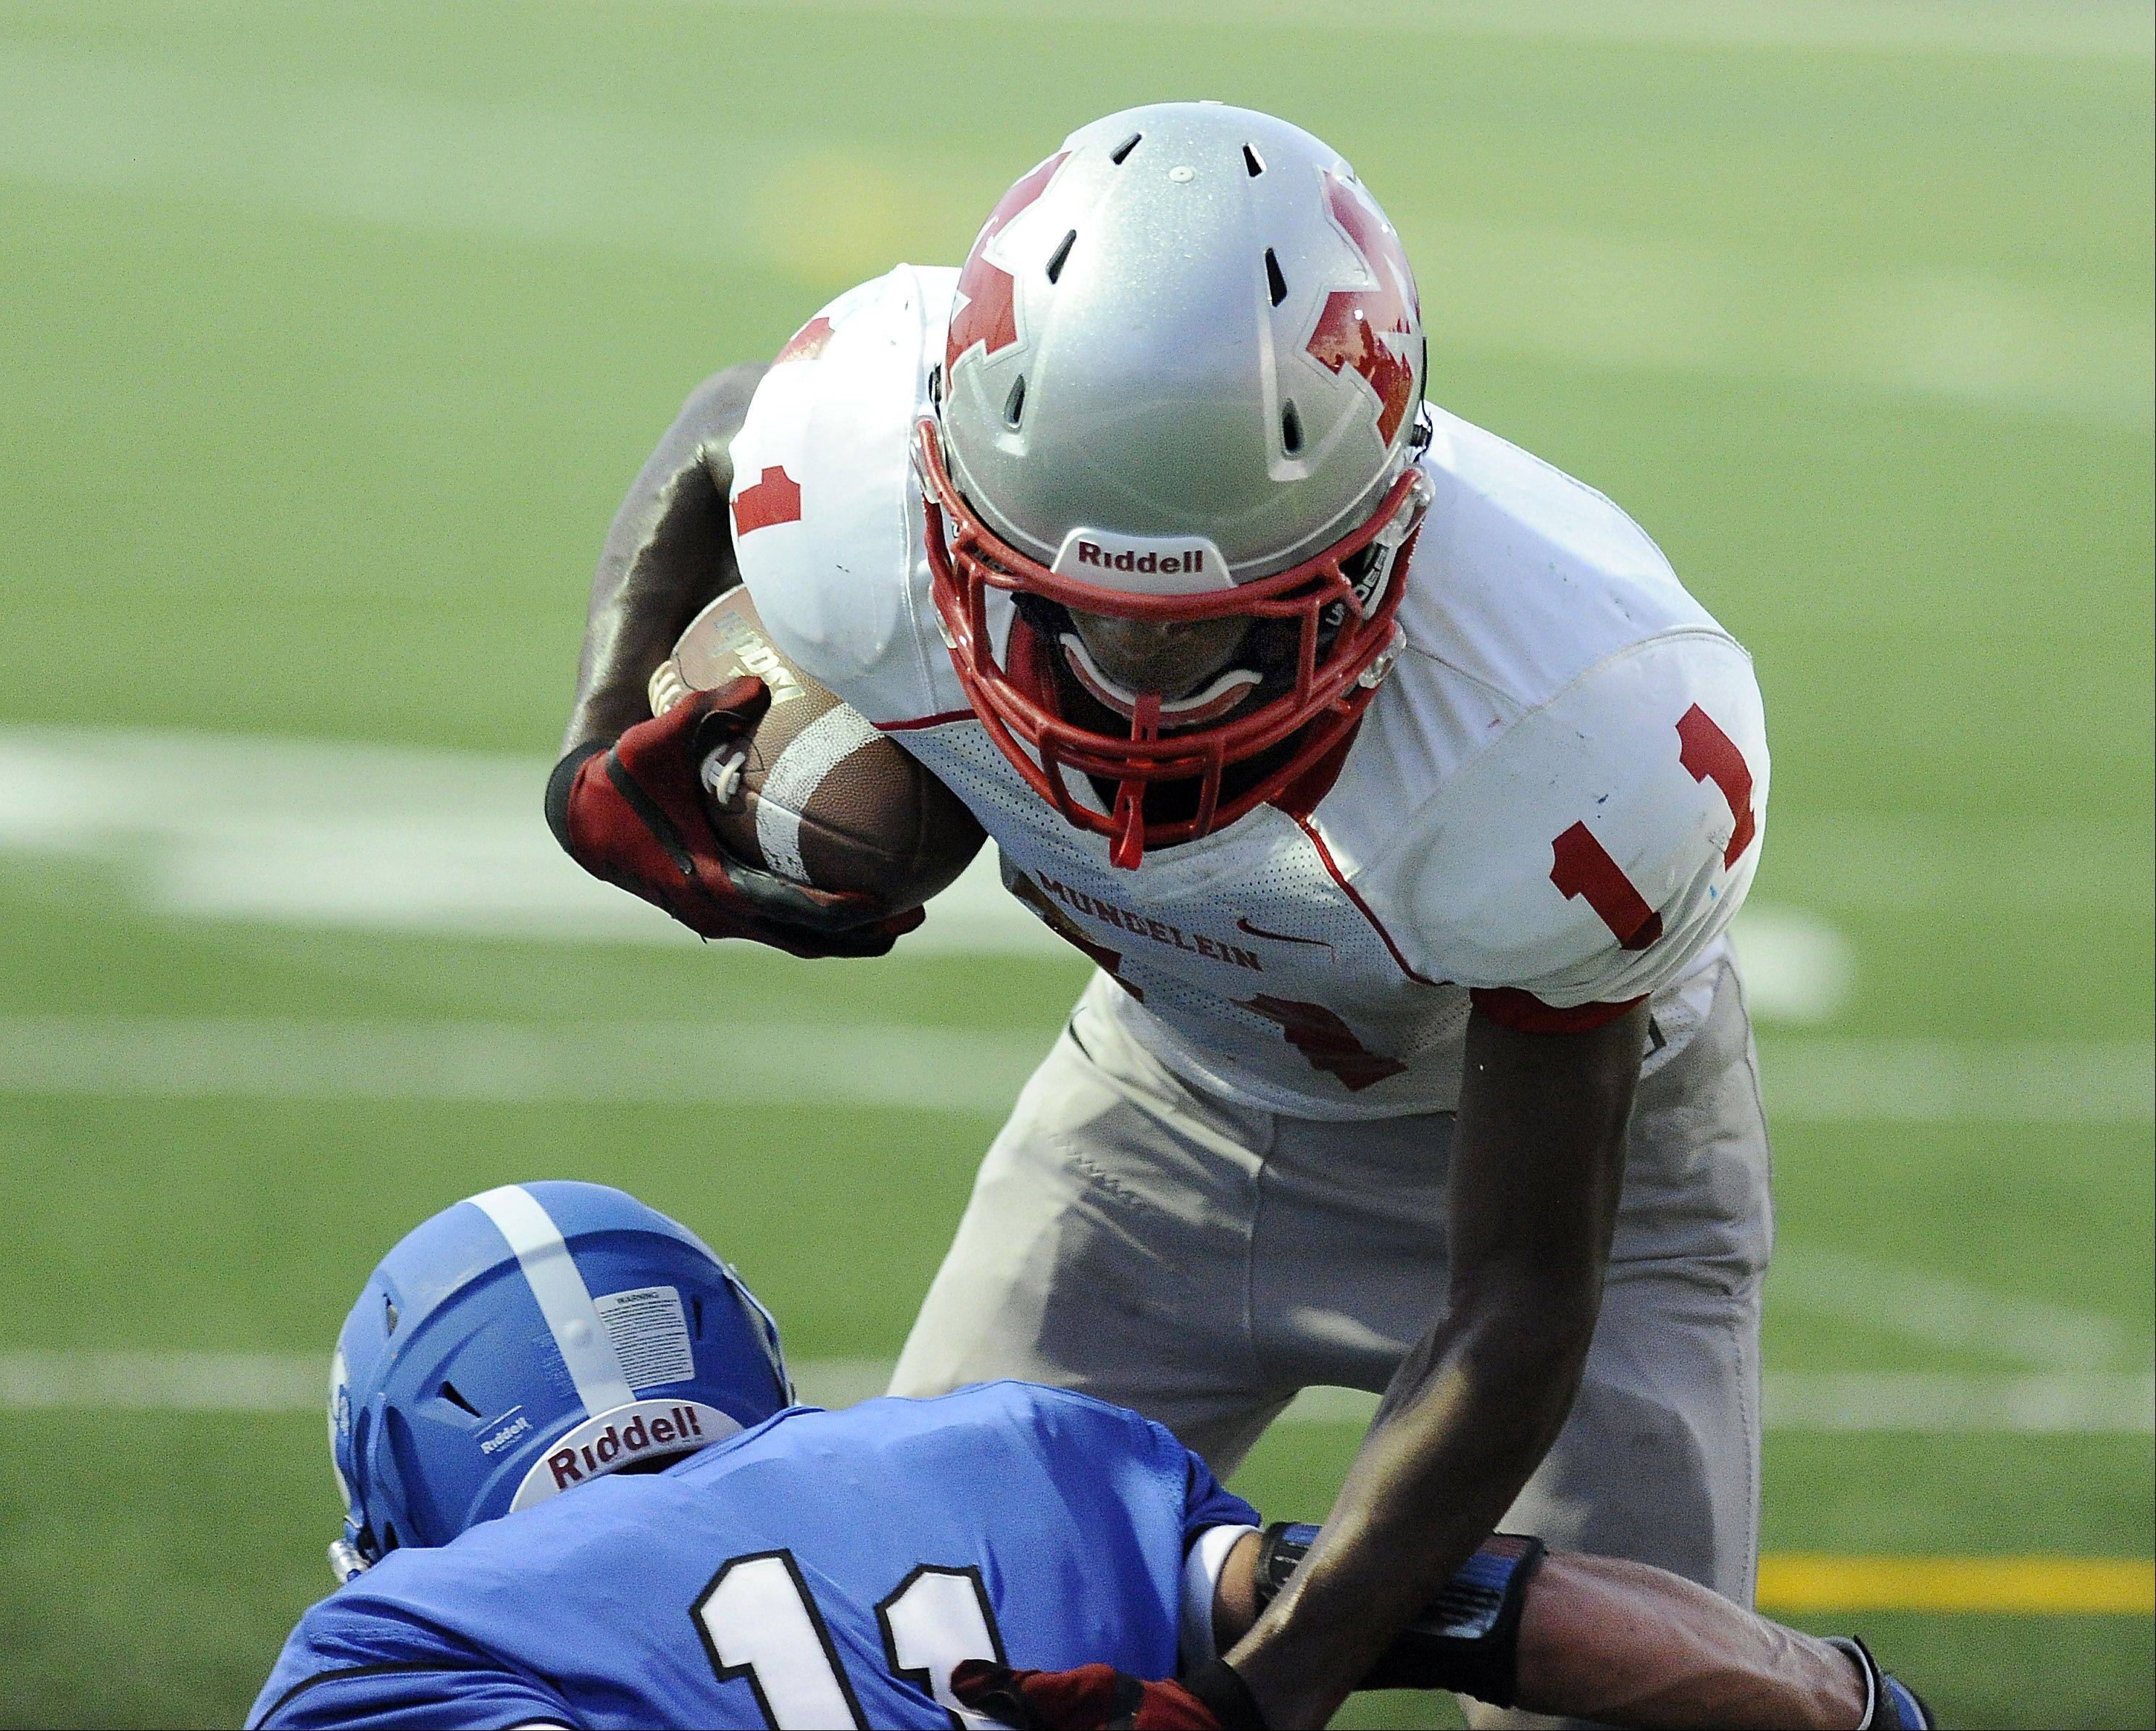 Mundelein's Chance Lindsey plows over Wheeling's Tyler Urban in the first quarter.